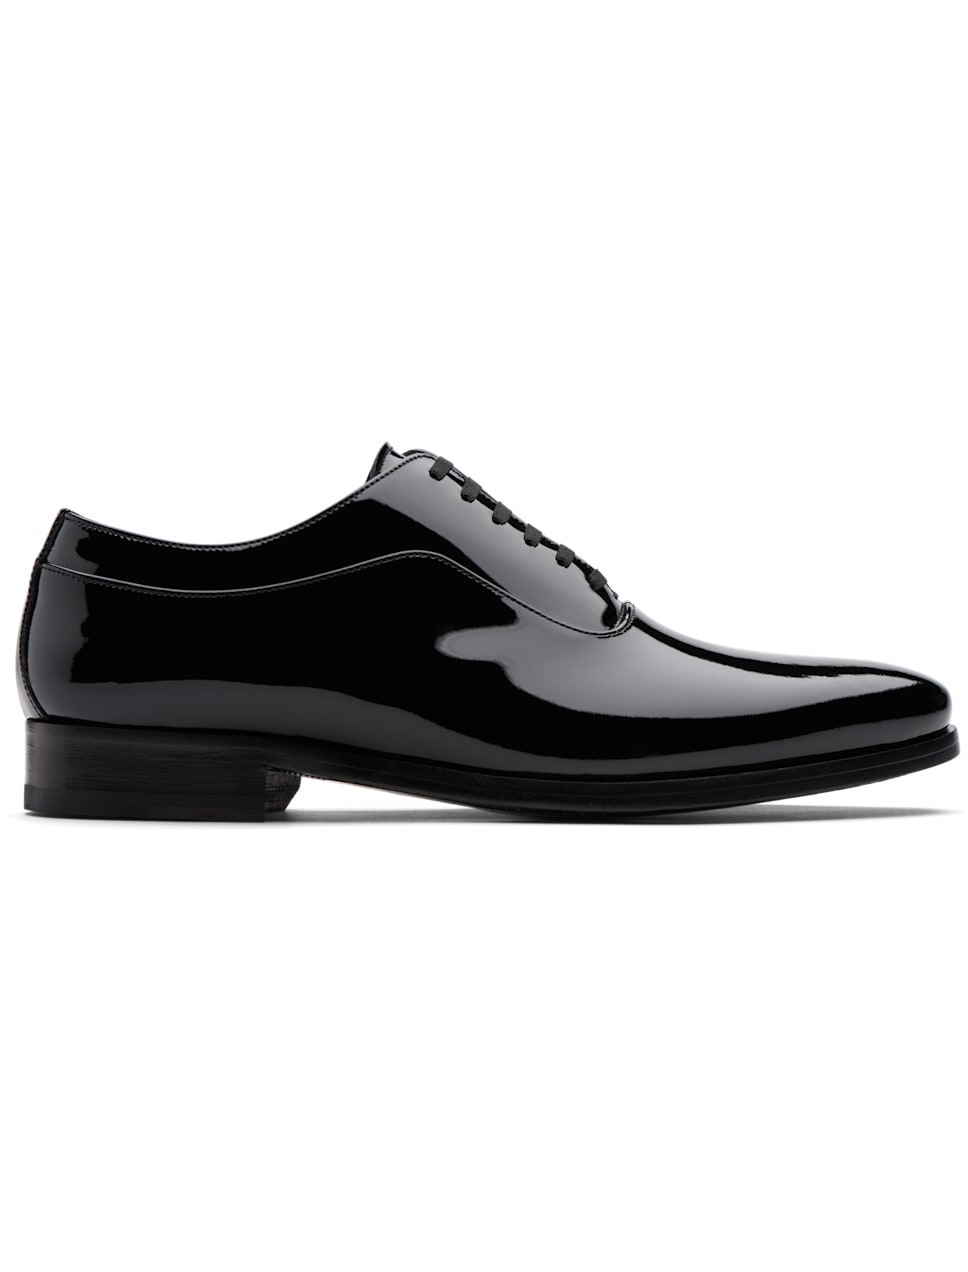 Black Tuxedo Shoe by Suitsupply